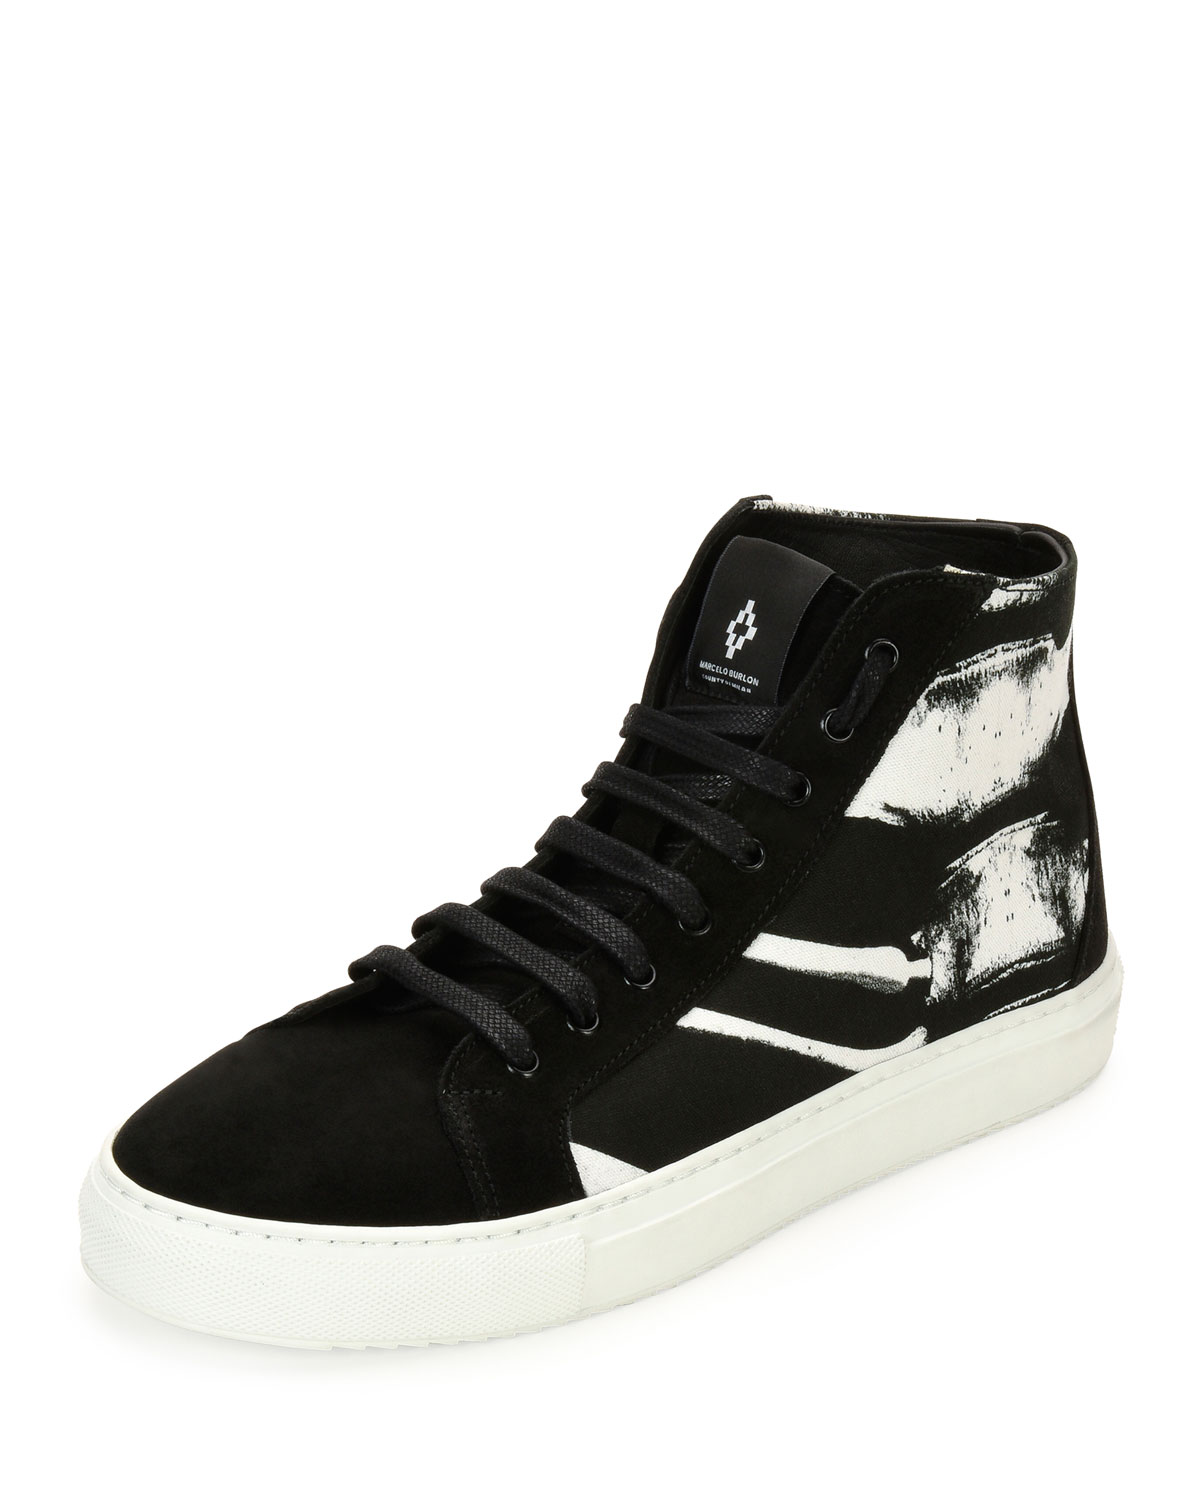 MARCELO BURLON High Top Sneakers w/ Tags